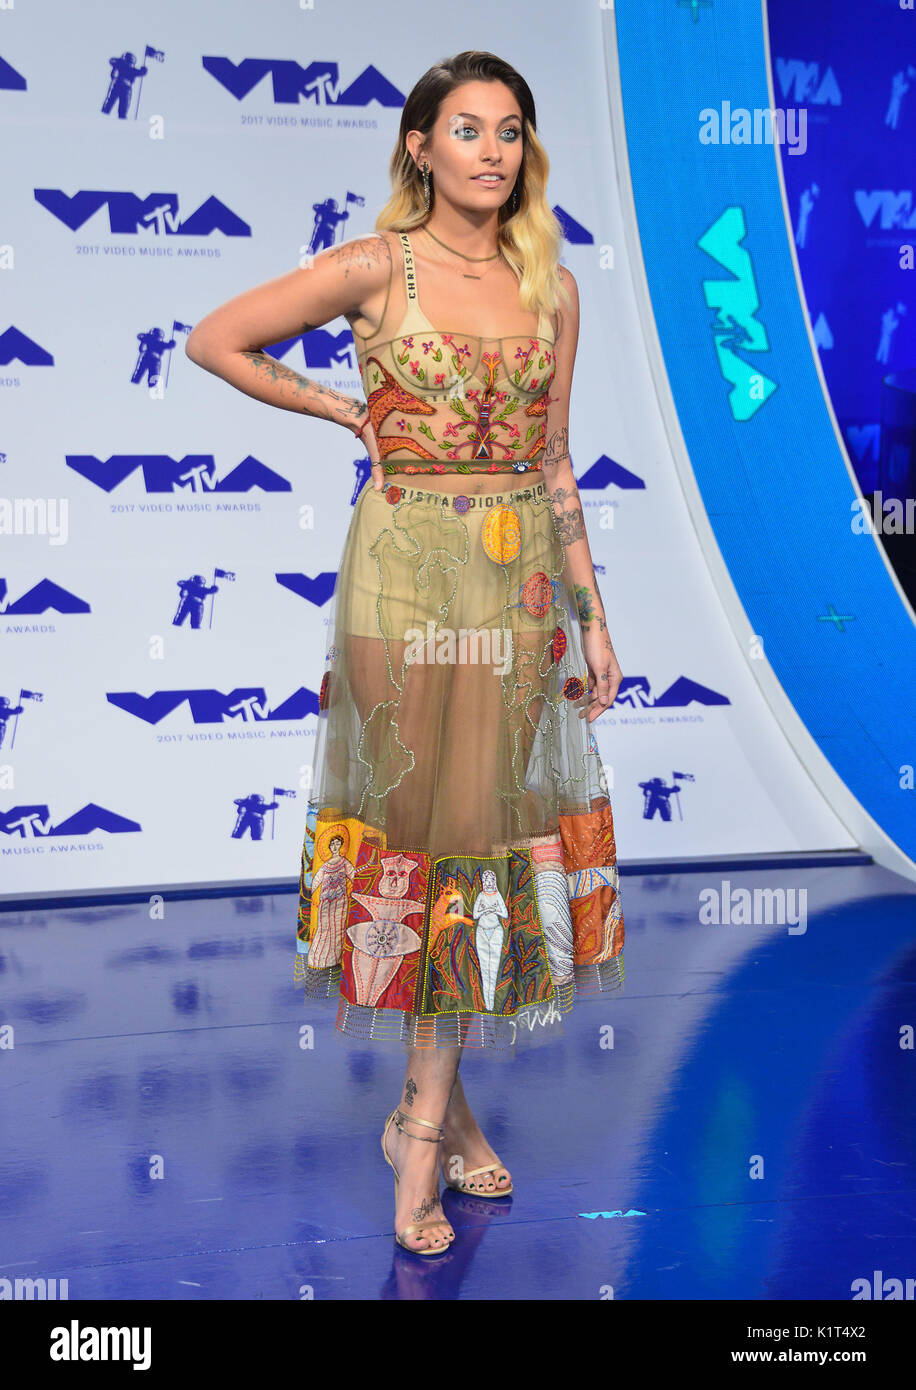 Los Angeles Usa 27th August 2017 Paris Jackson 167 Arriving At Stock Photo Alamy